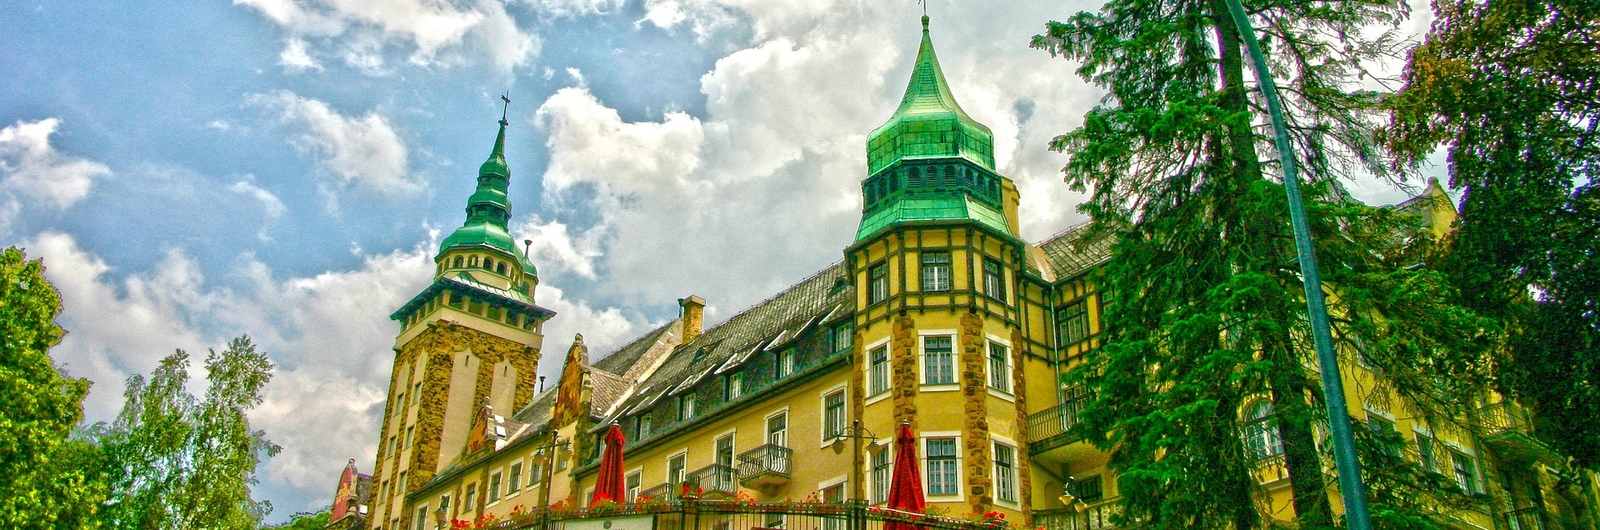 miskolc city header